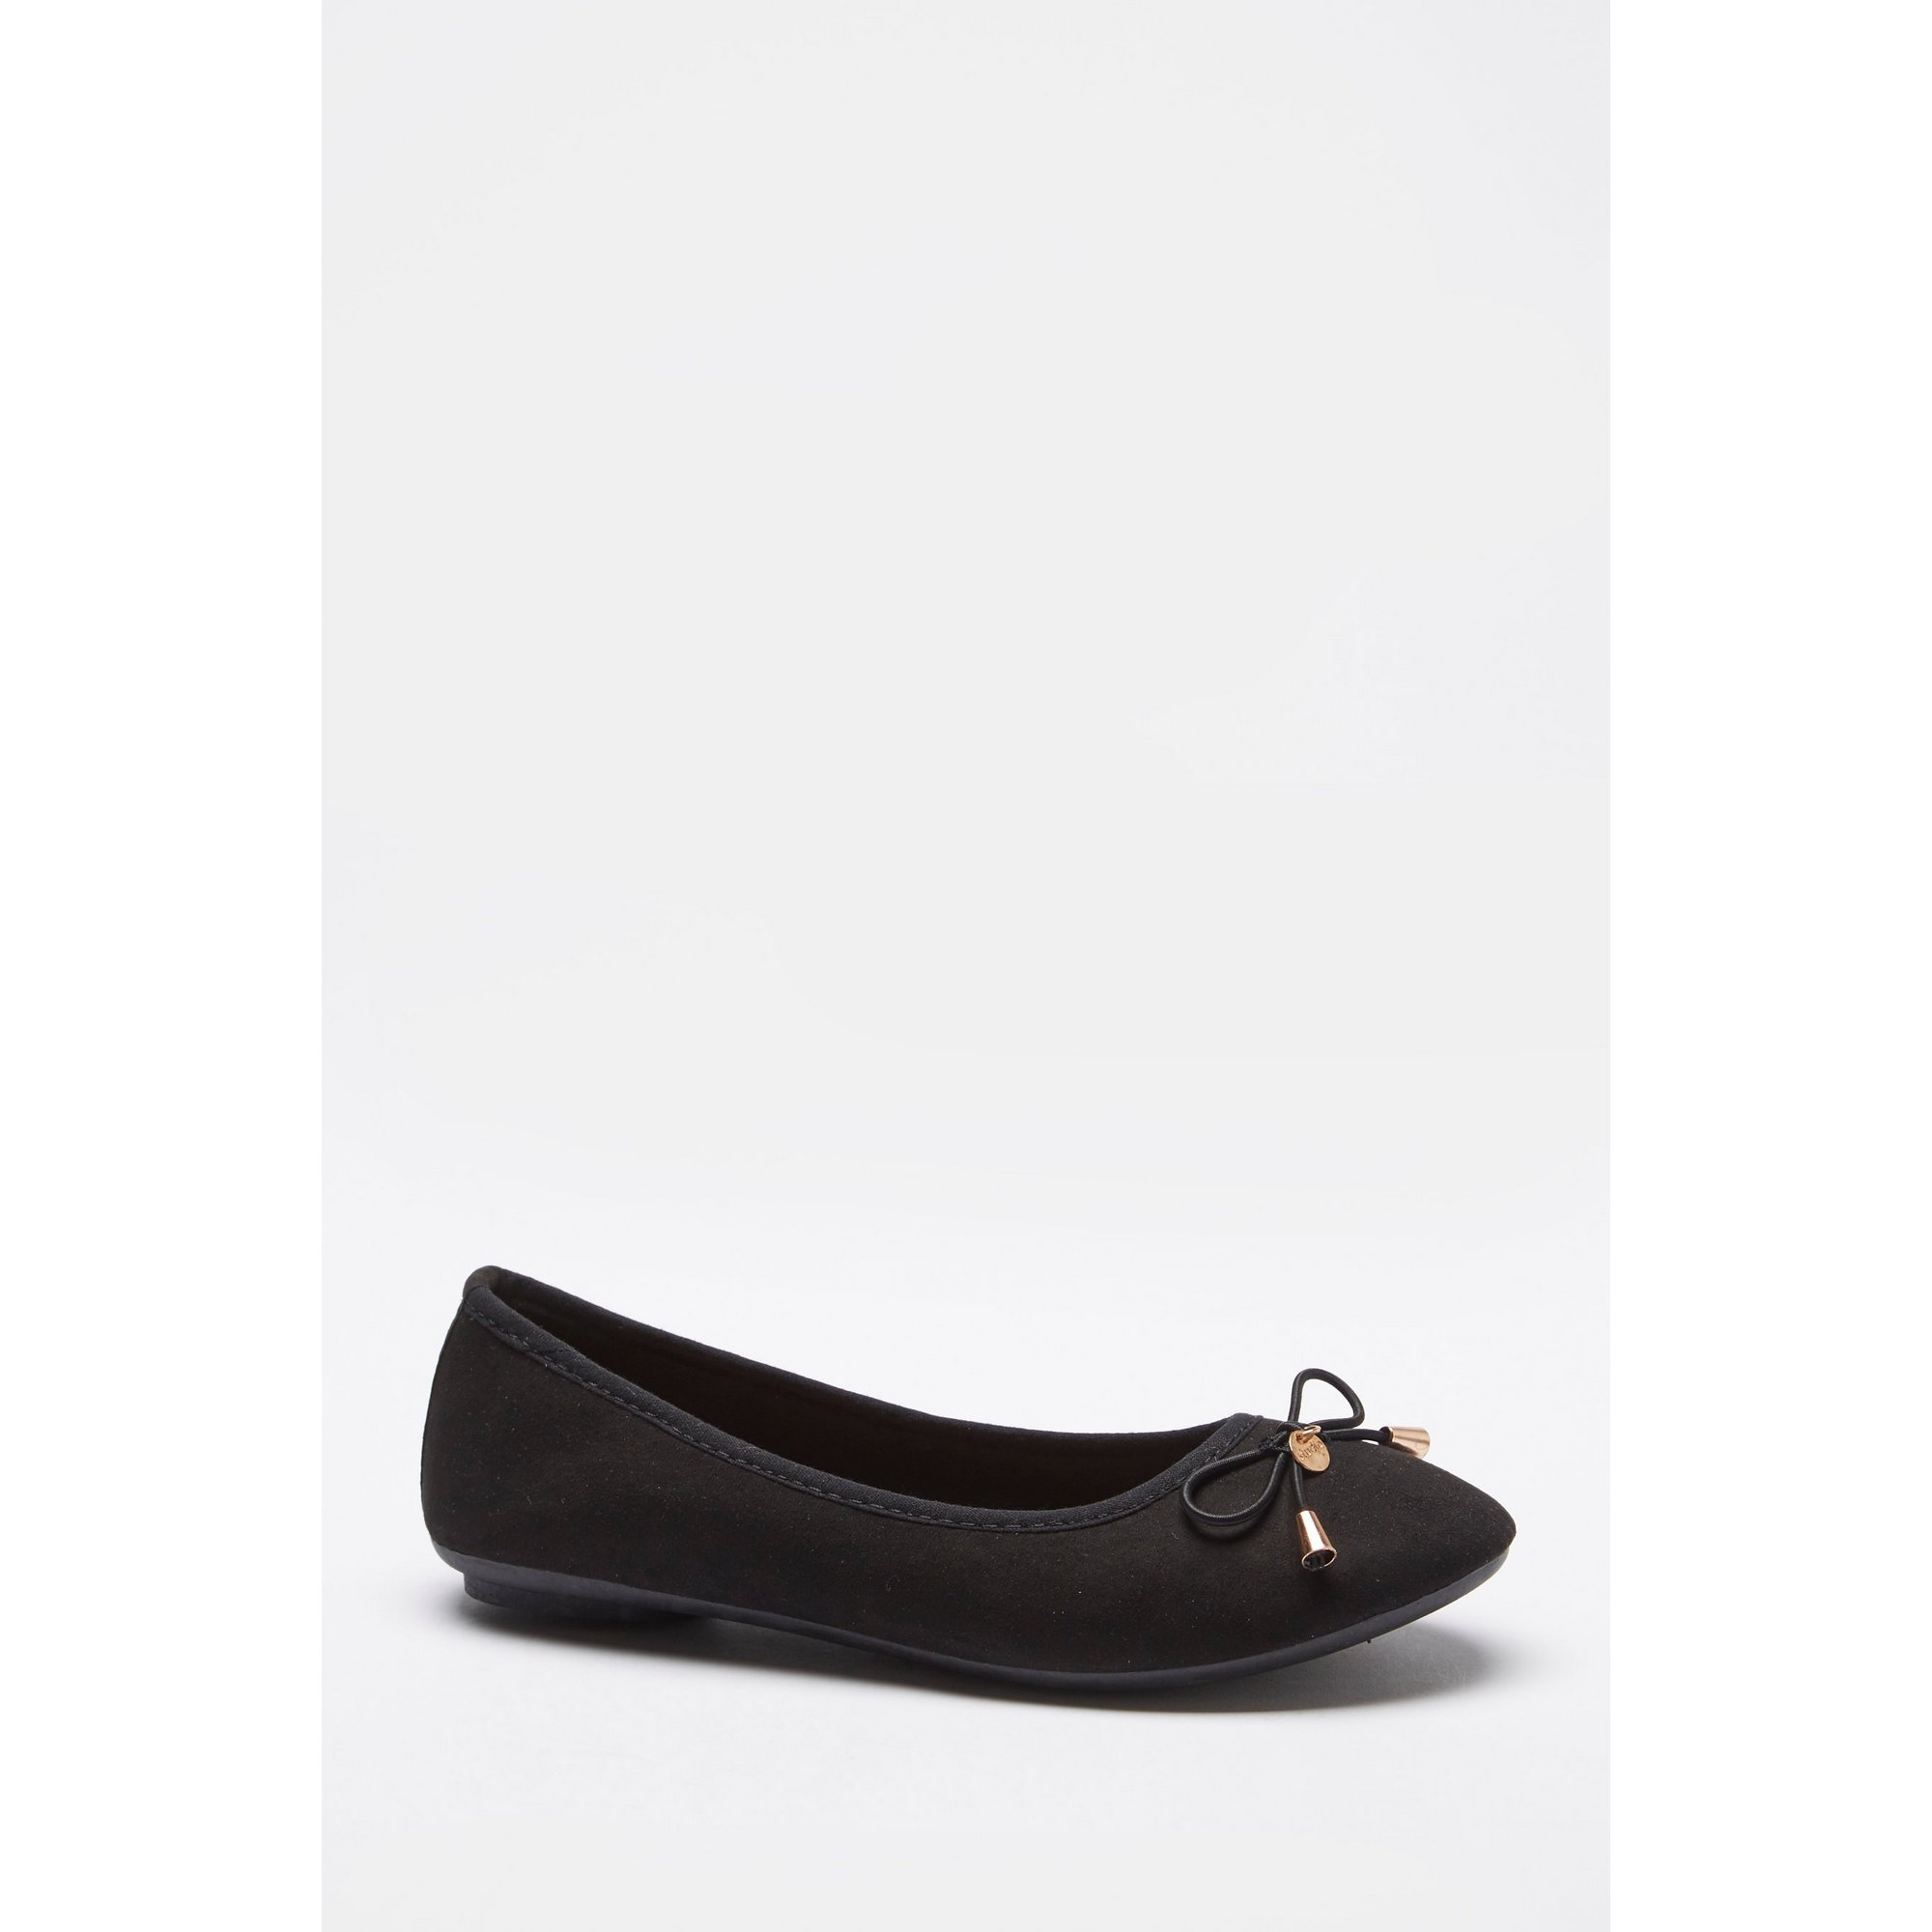 Image of Ballerina Shoes